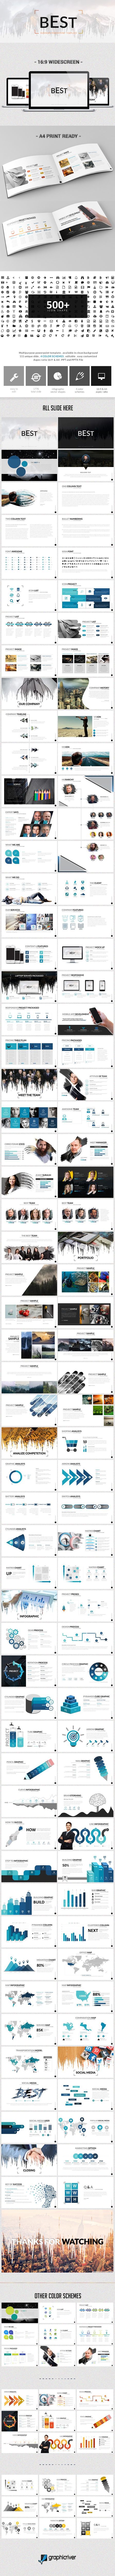 GraphicRiver Best Business Powerpoint 21163077